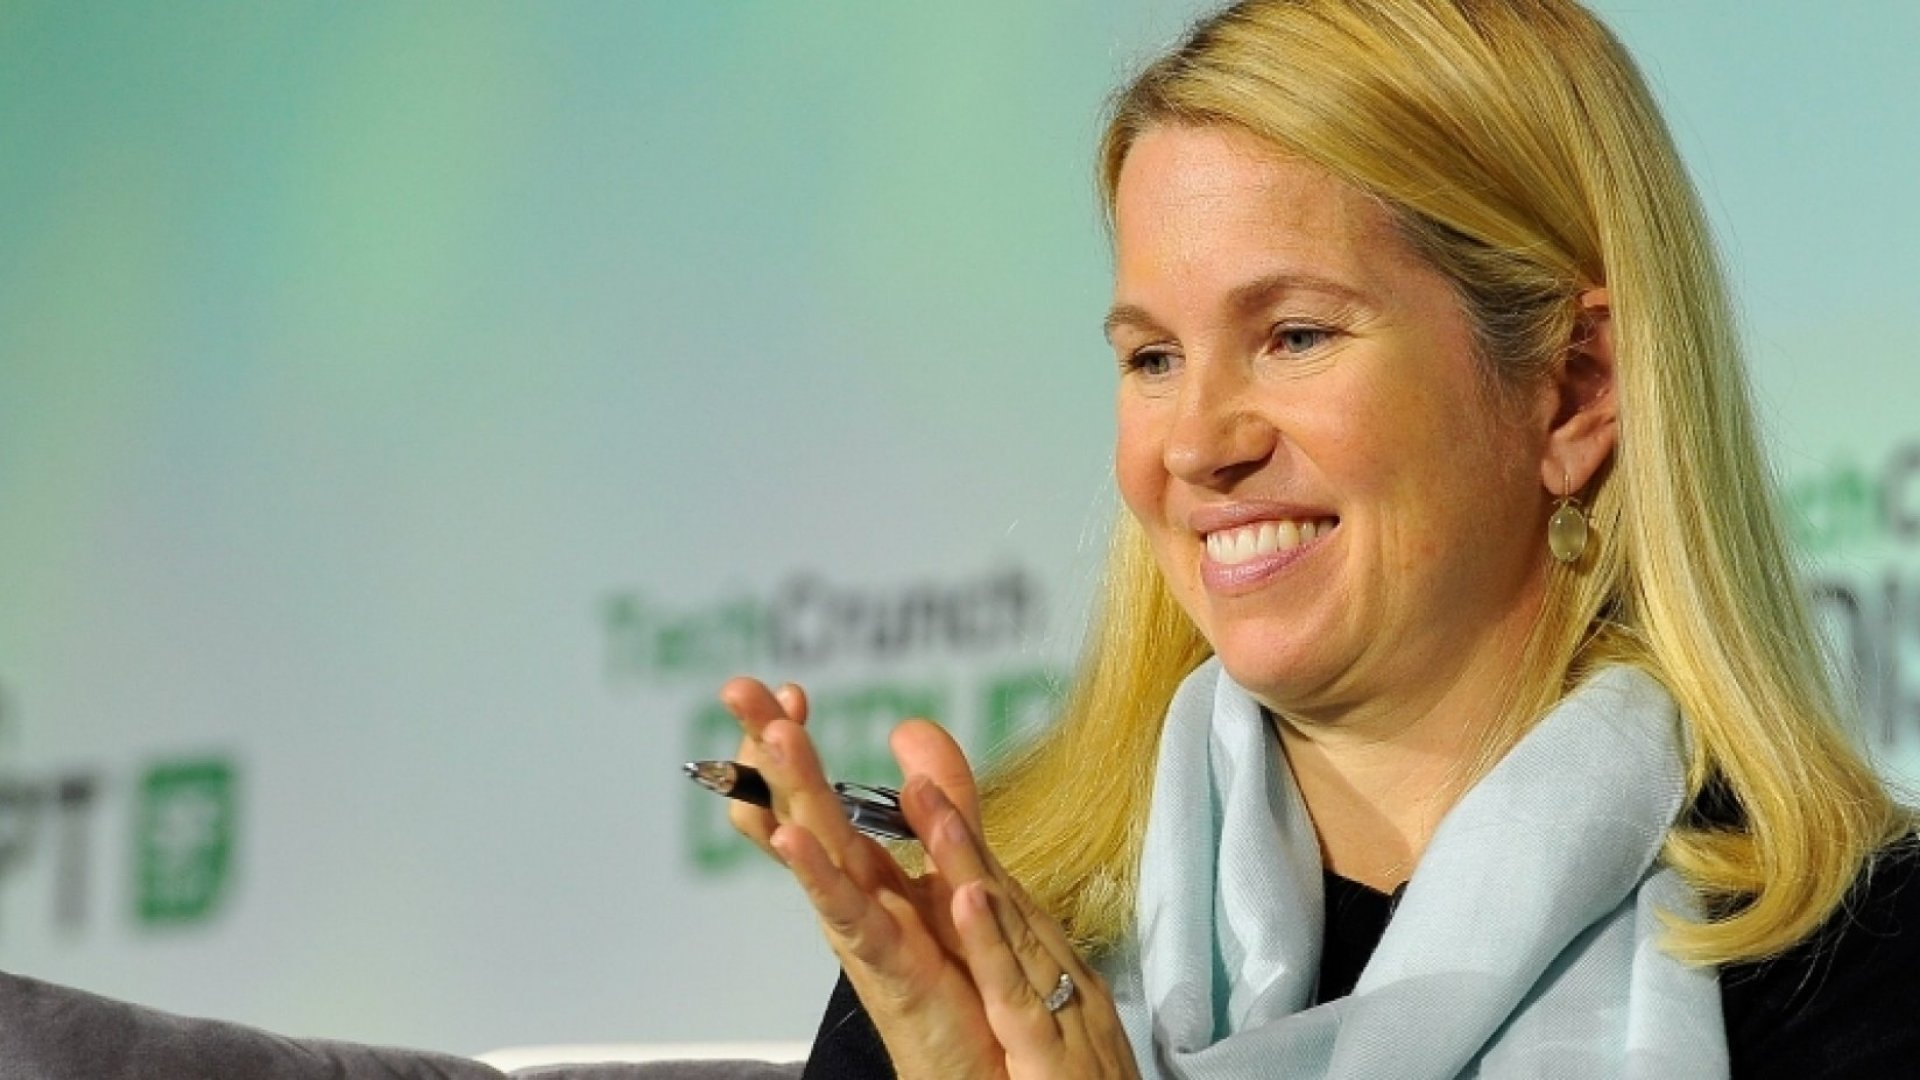 Y Combinator Co-founder to Women Entrepreneurs: Forget About Gender